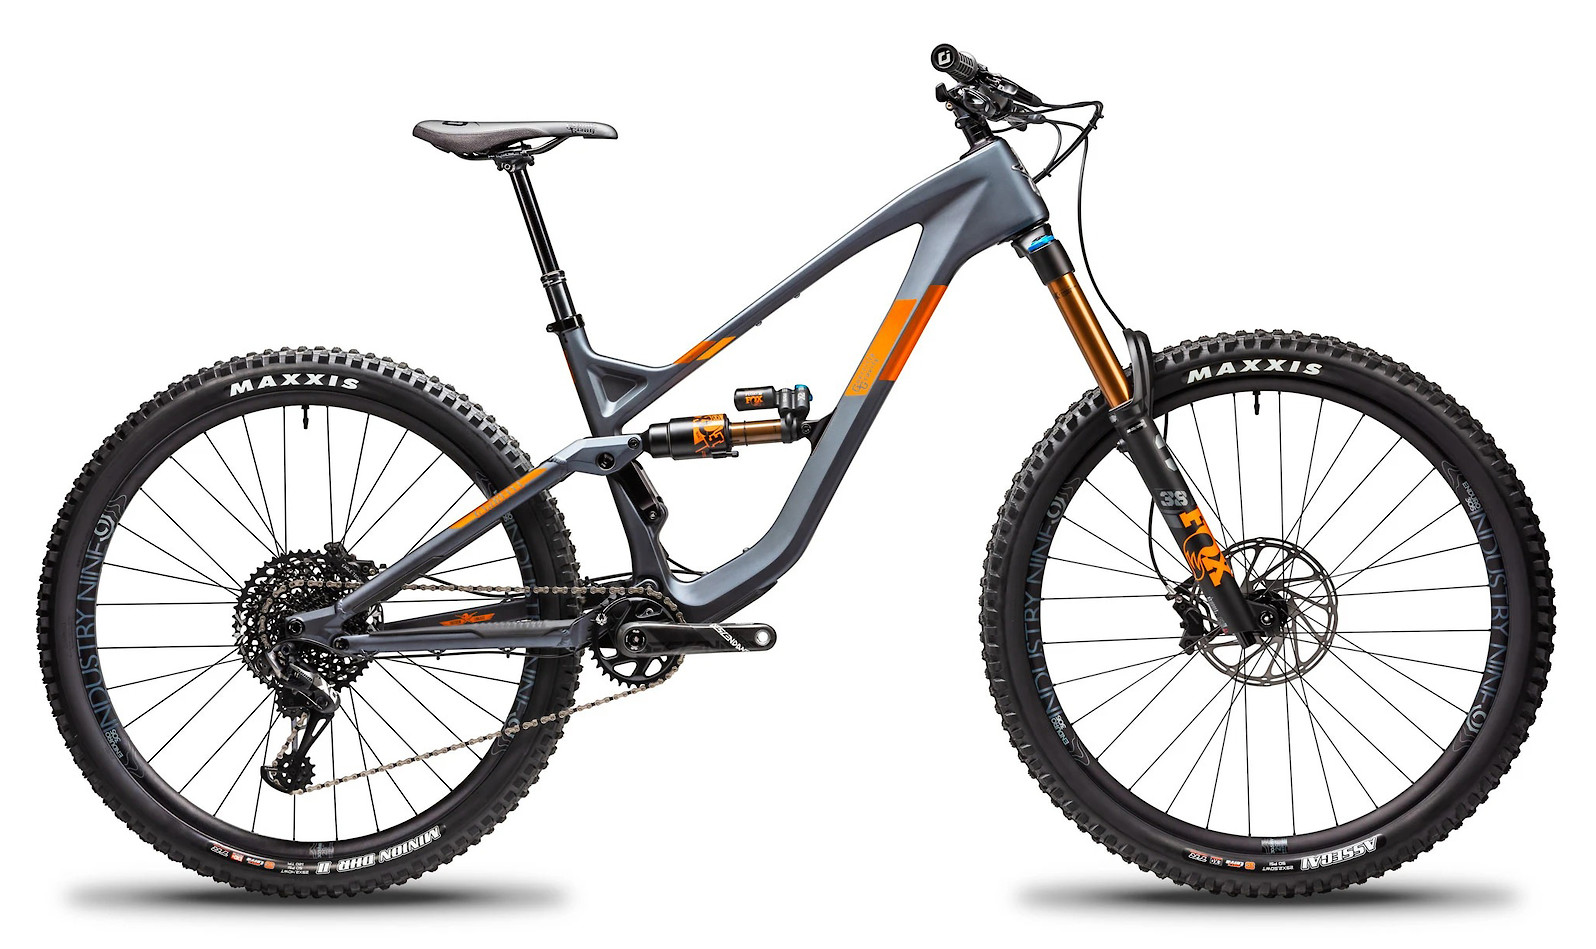 2020 Guerrilla Gravity Gnarvana (Race build shown; Orange decals)